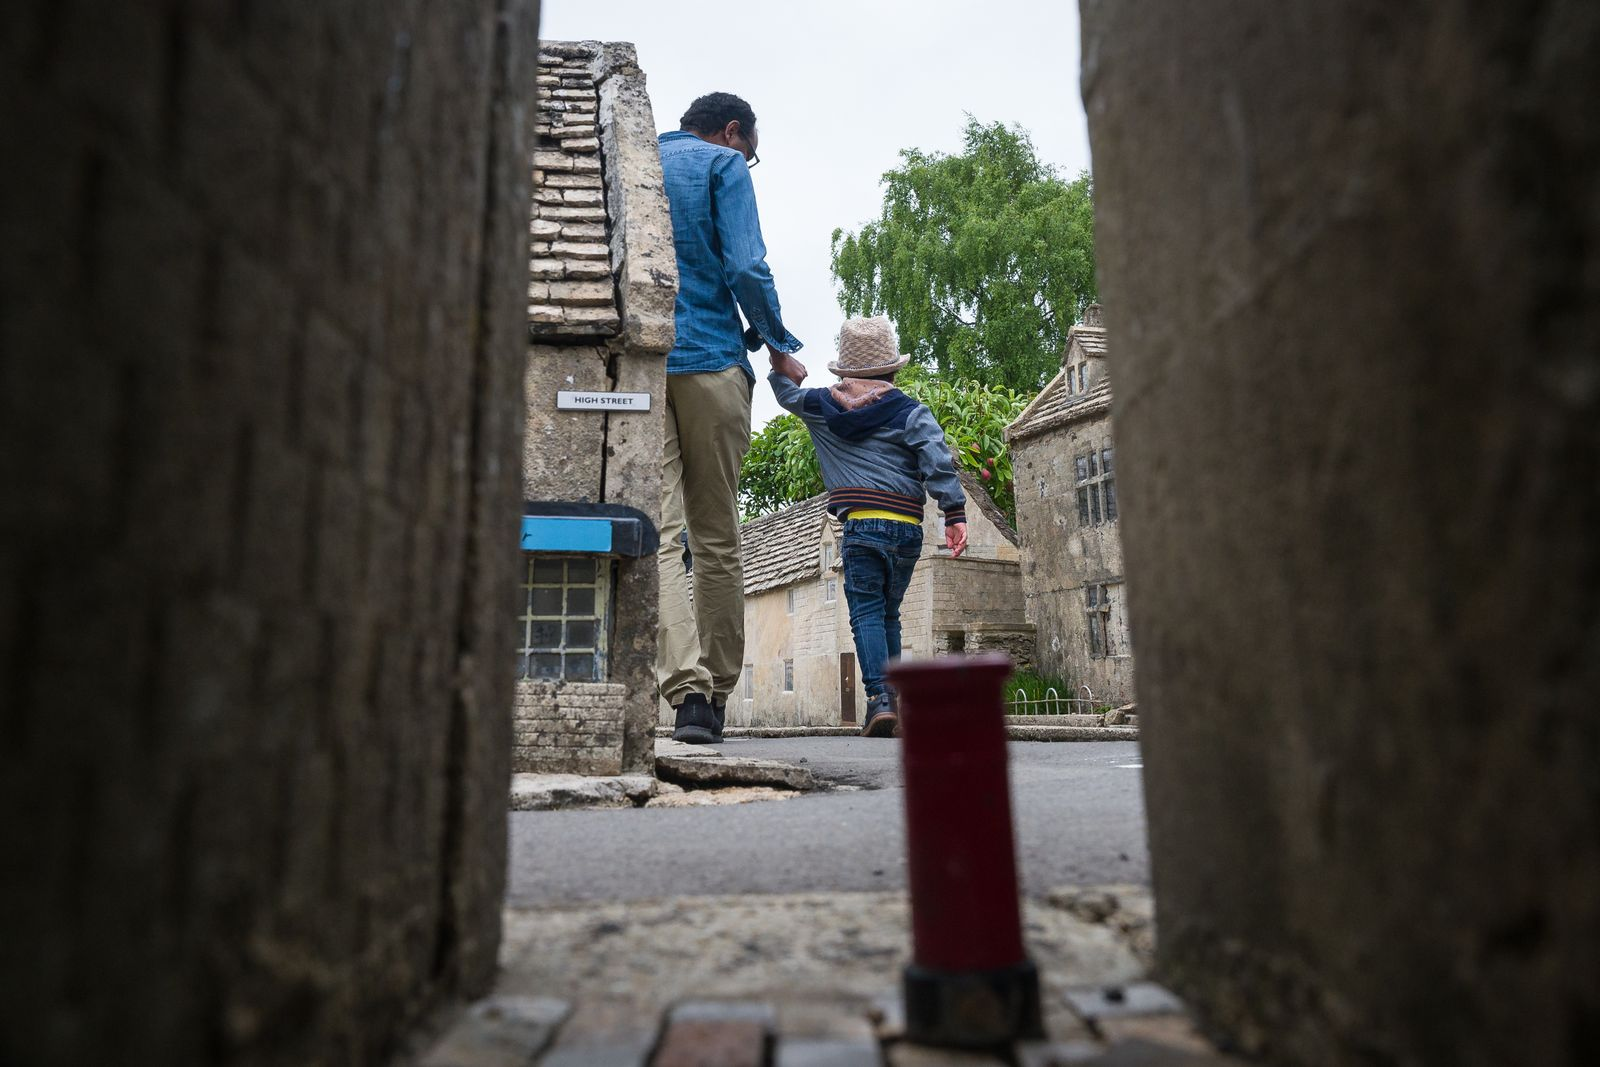 *** BESTPIX *** England's Model Villages Reopen Their Tiny Doors Amid Easing Lockdown